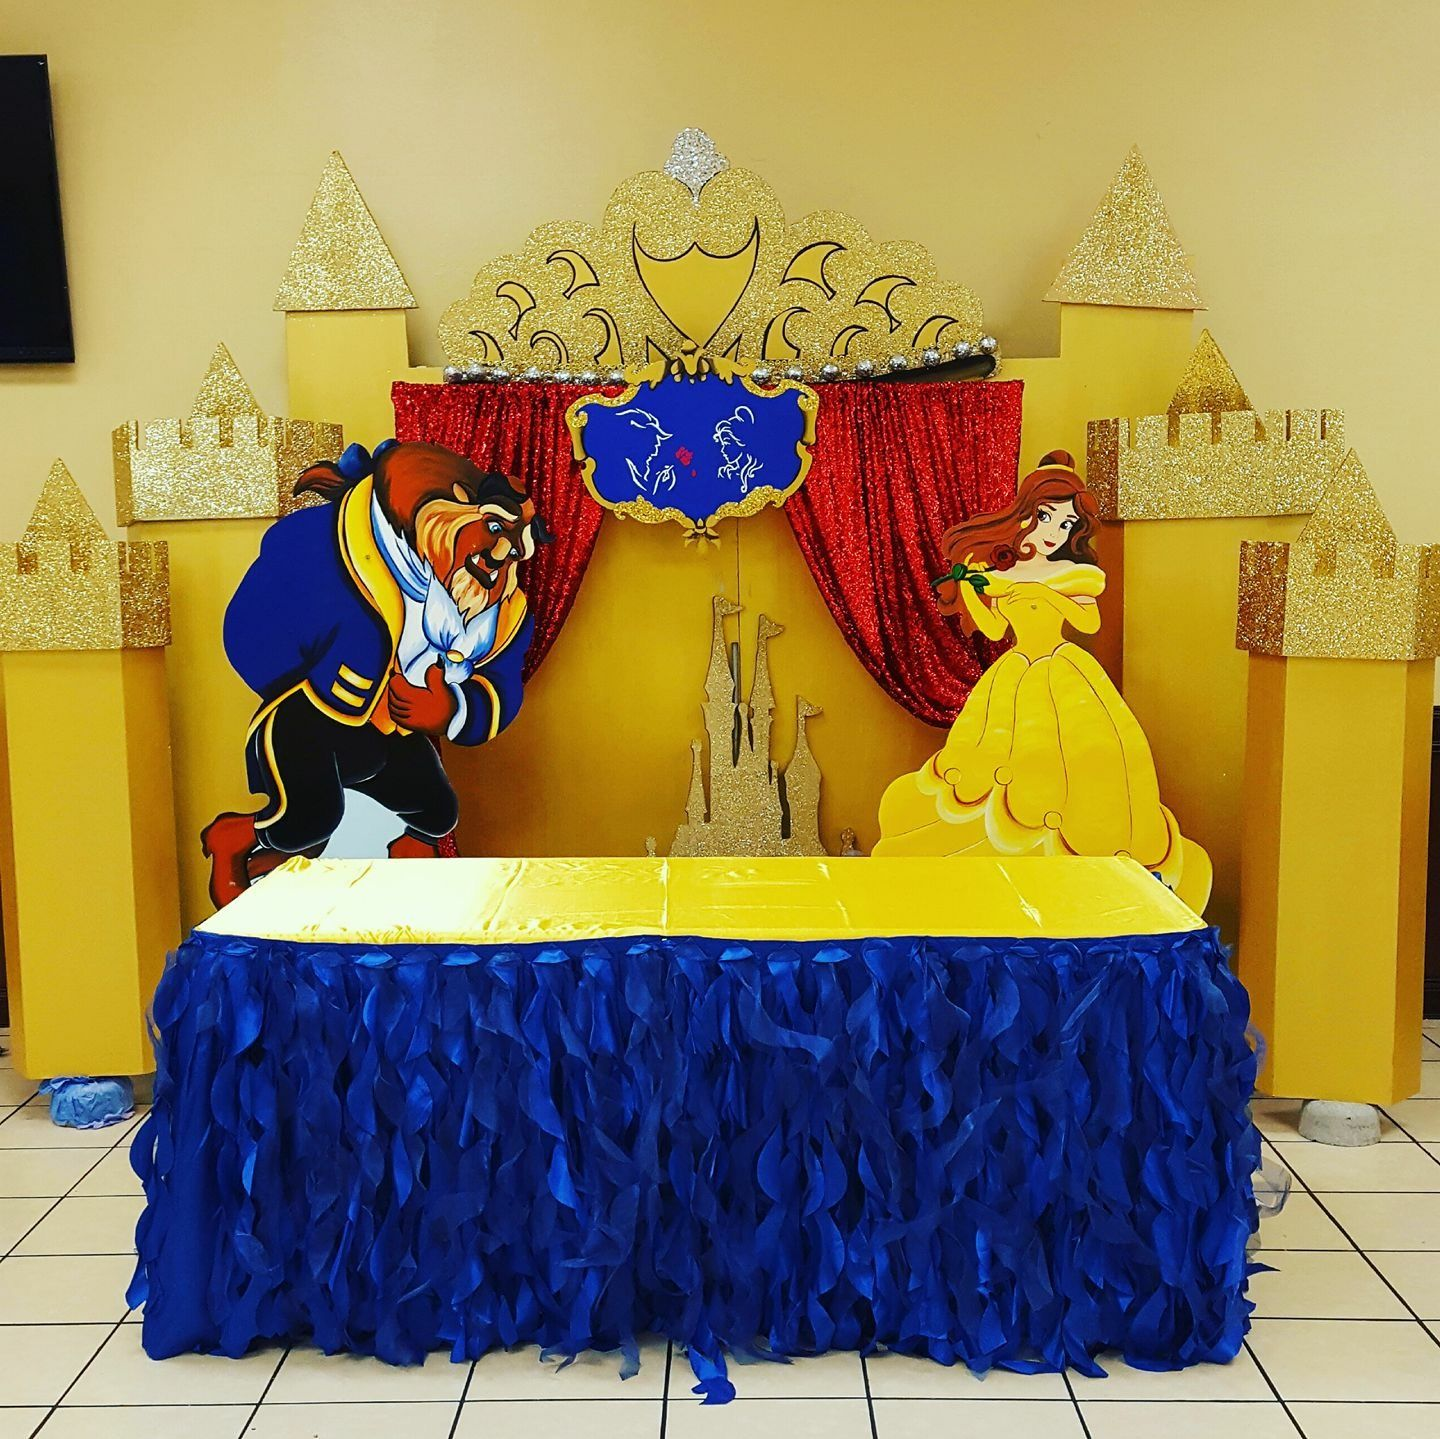 Beauty and the beast cake table Decour | Beauty & The Beast Party ...